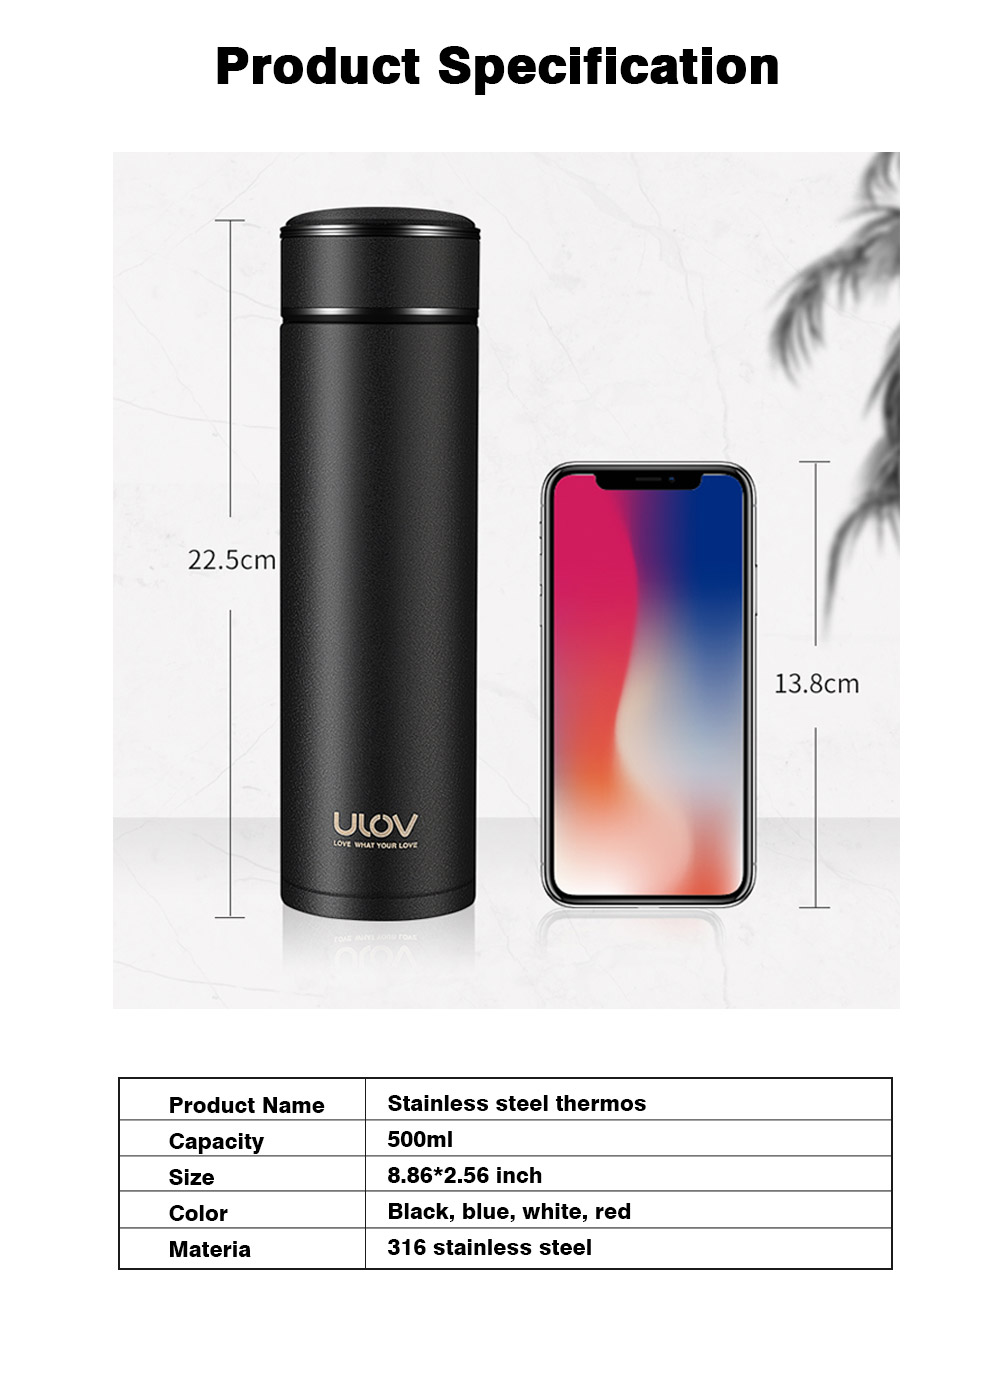 Portable 500ML Stainless Steel Thermos Mug, Minimalist Large Capacity Black White Sanded Smooth Vacuum Flask Tumbler 8